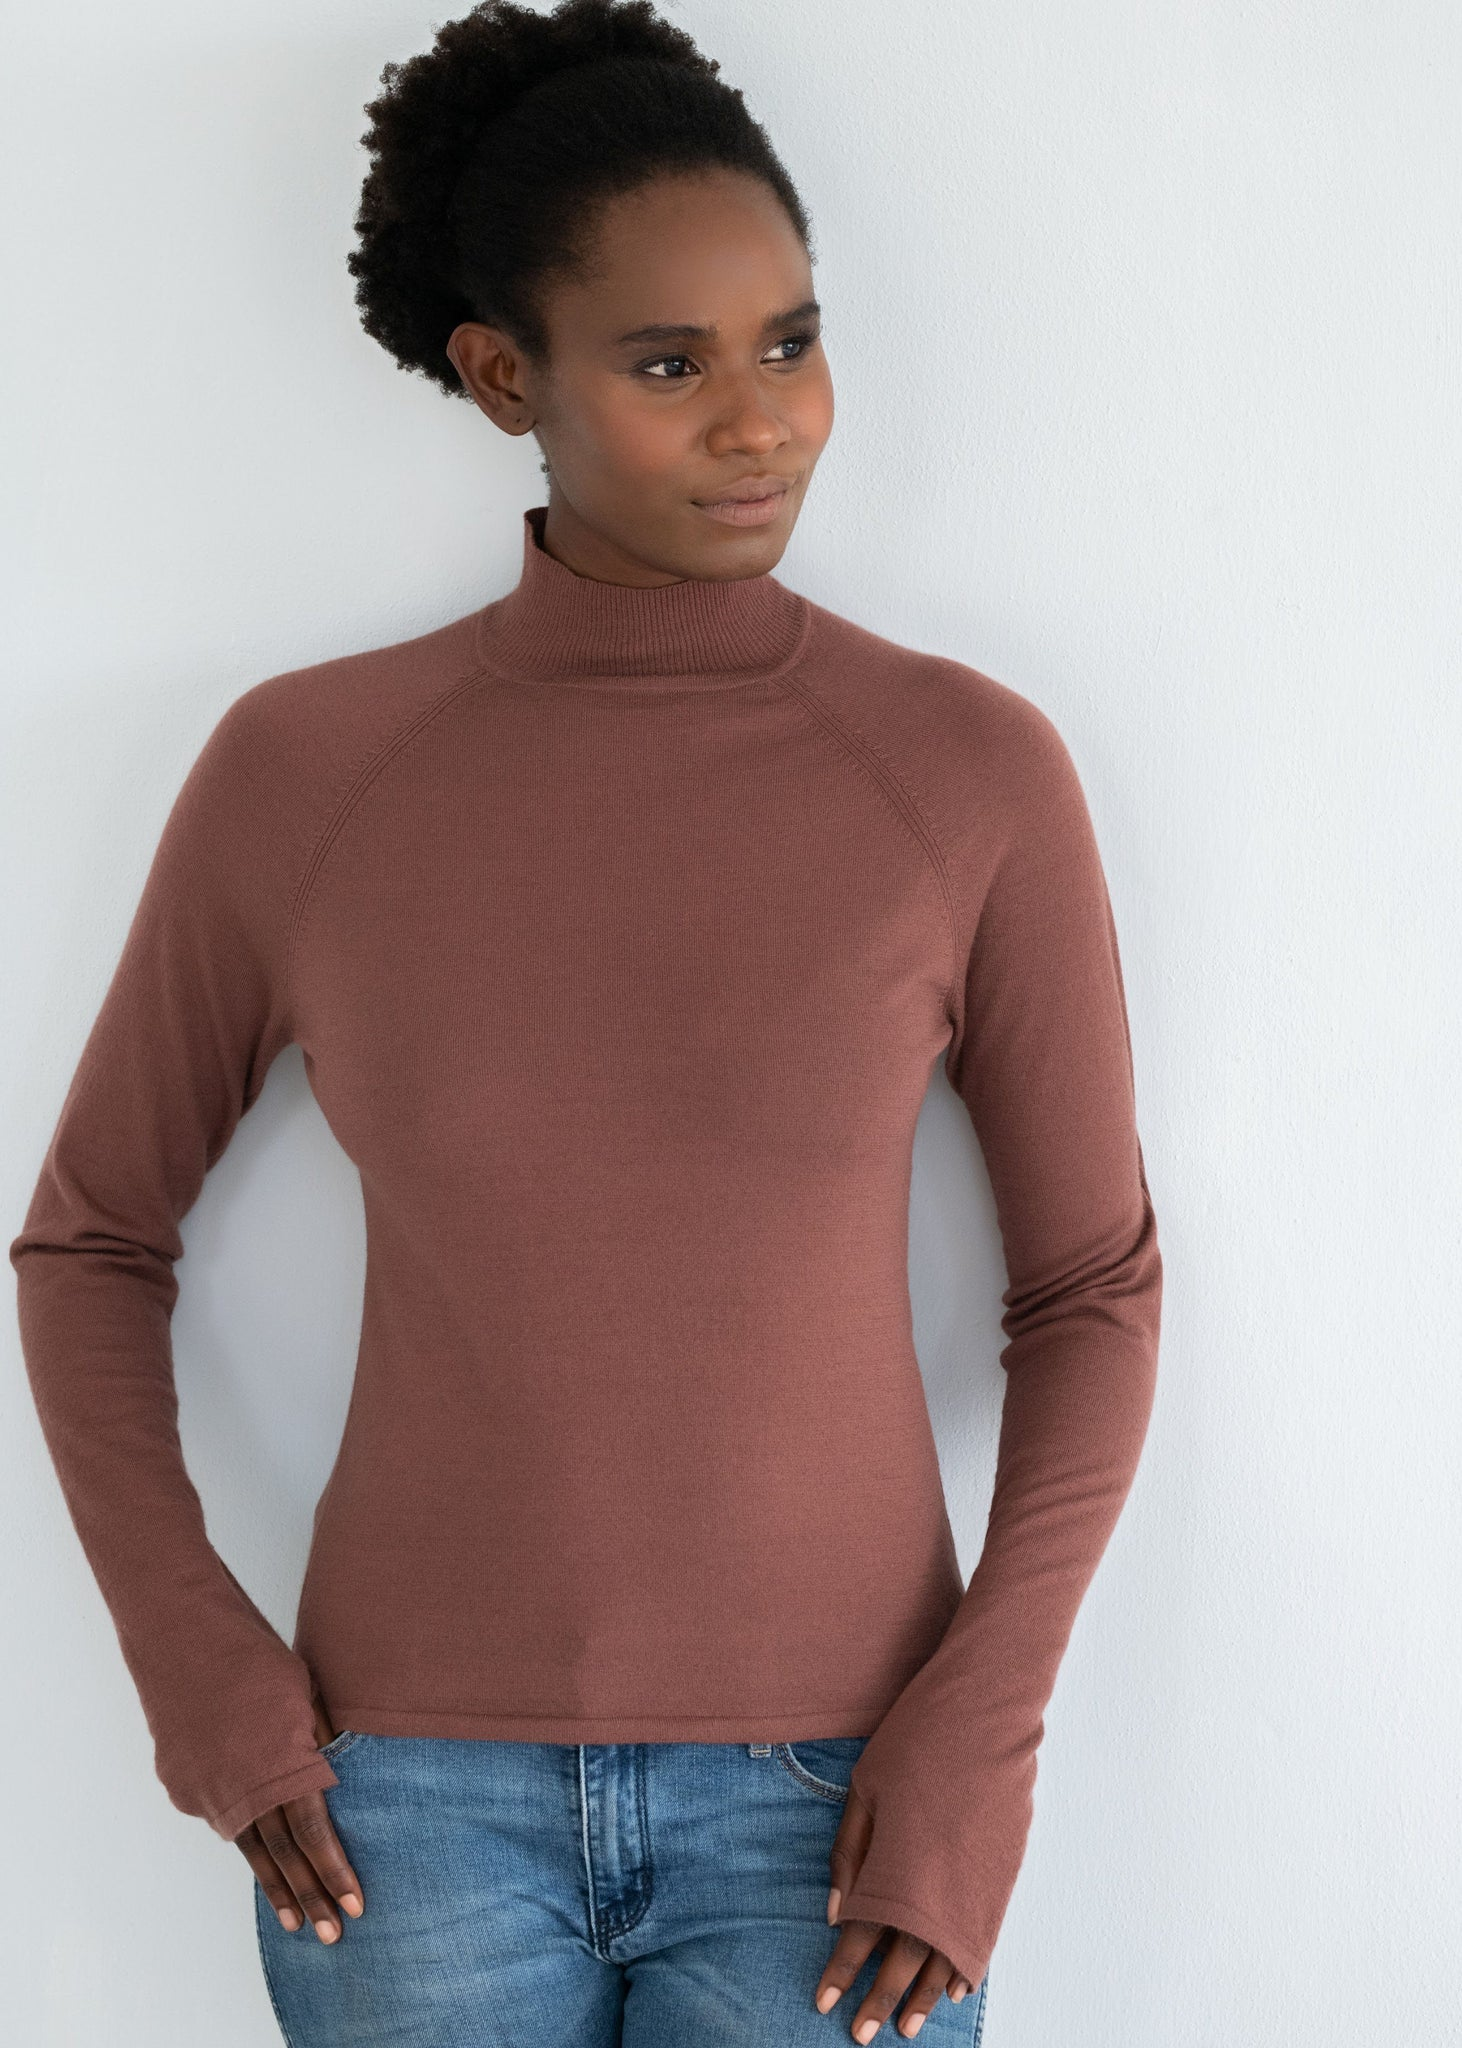 JASMINE | Our comfort high-neck